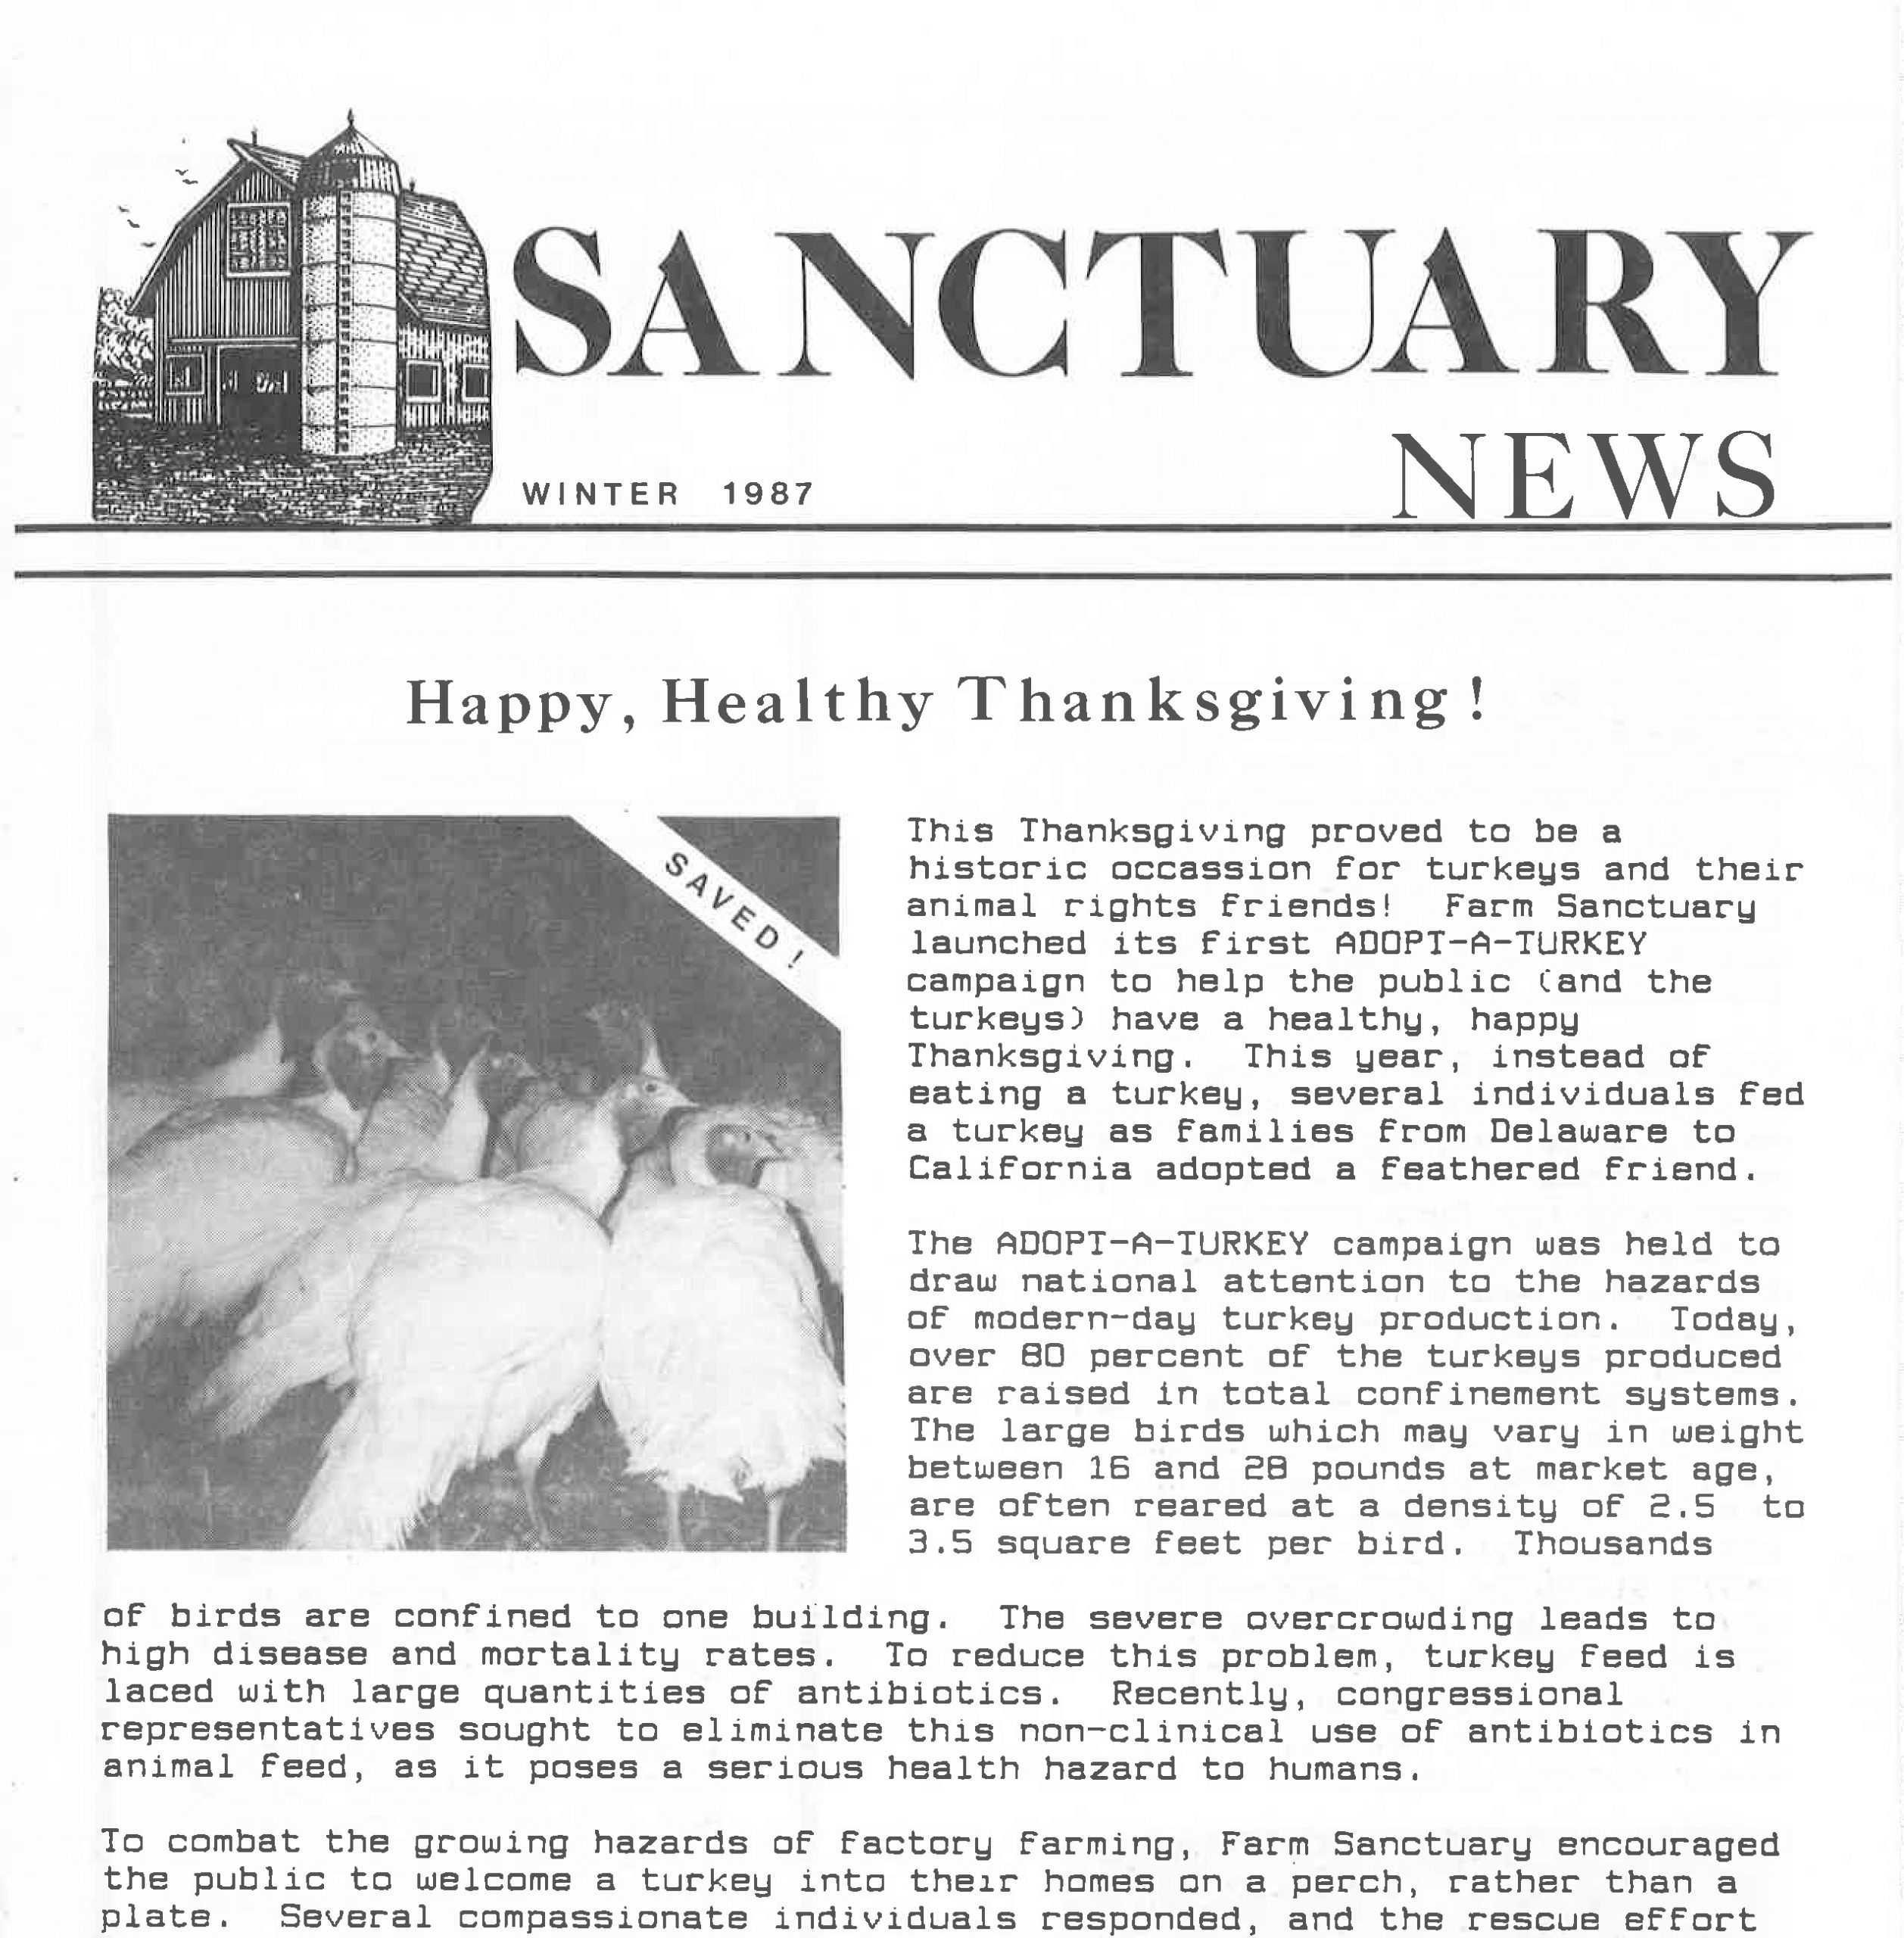 A clipping of the 1987 Winter issue of Sanctuary News featuring a story about the Adopt a Turkey program